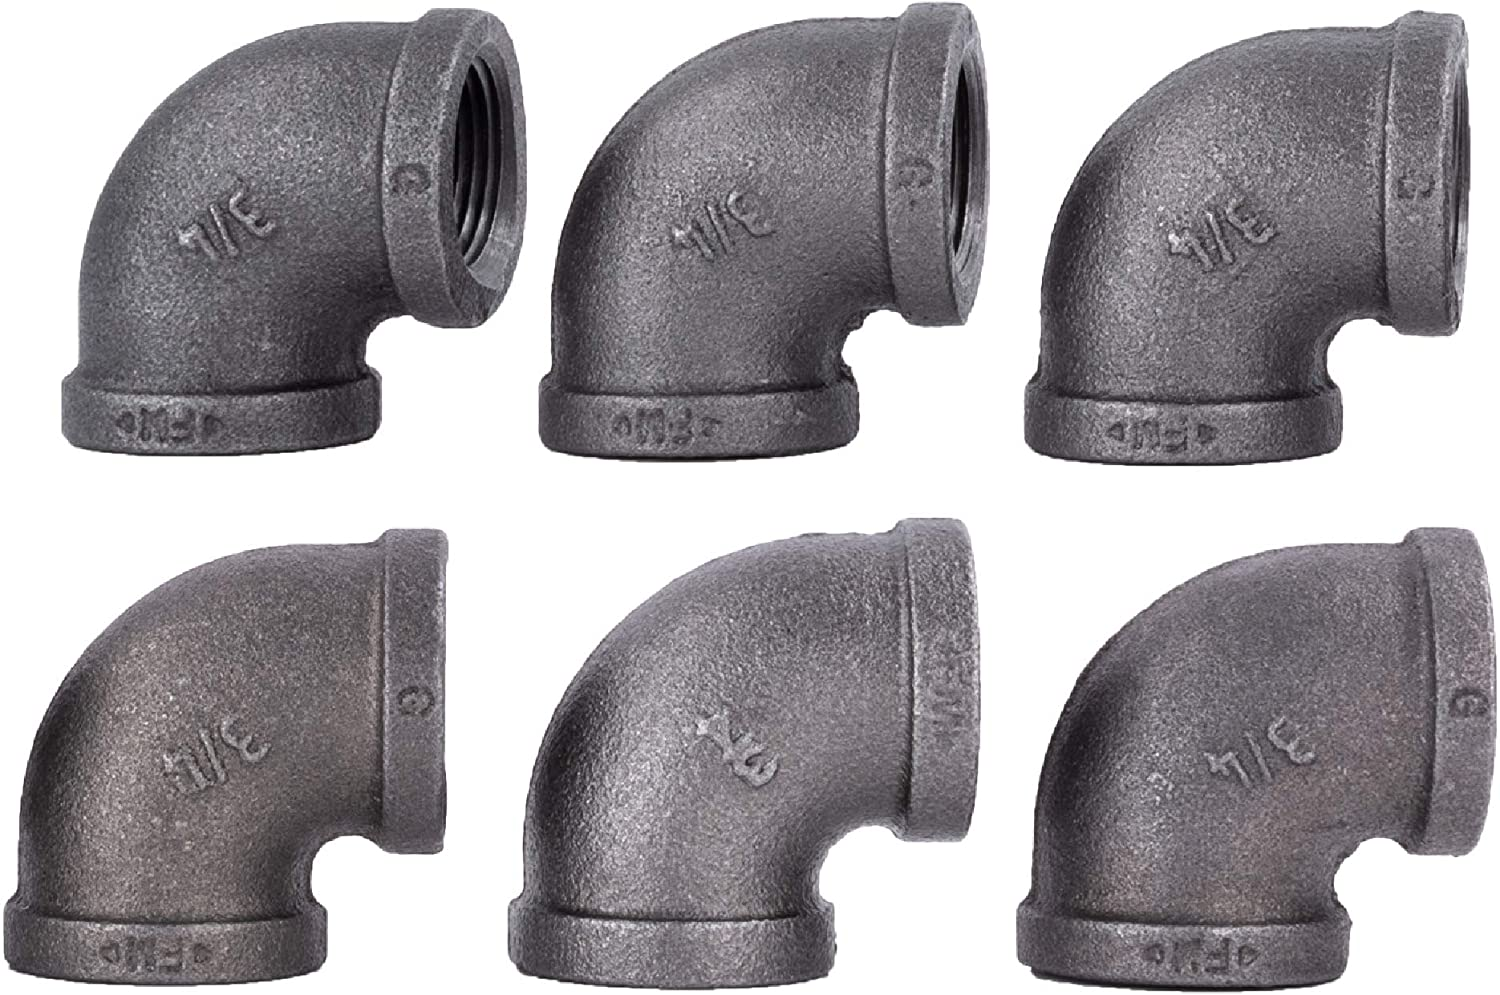 """3/4 Inch Elbows Industrial Malleable Cast Iron Pipe Fitting 6 Pack by Pipe Decor, Pipe Components for Building Tables, Chairs, Shelving, and Custom Furniture, Fits 3/4"""" Pipe, Six Pack of Elbows"""